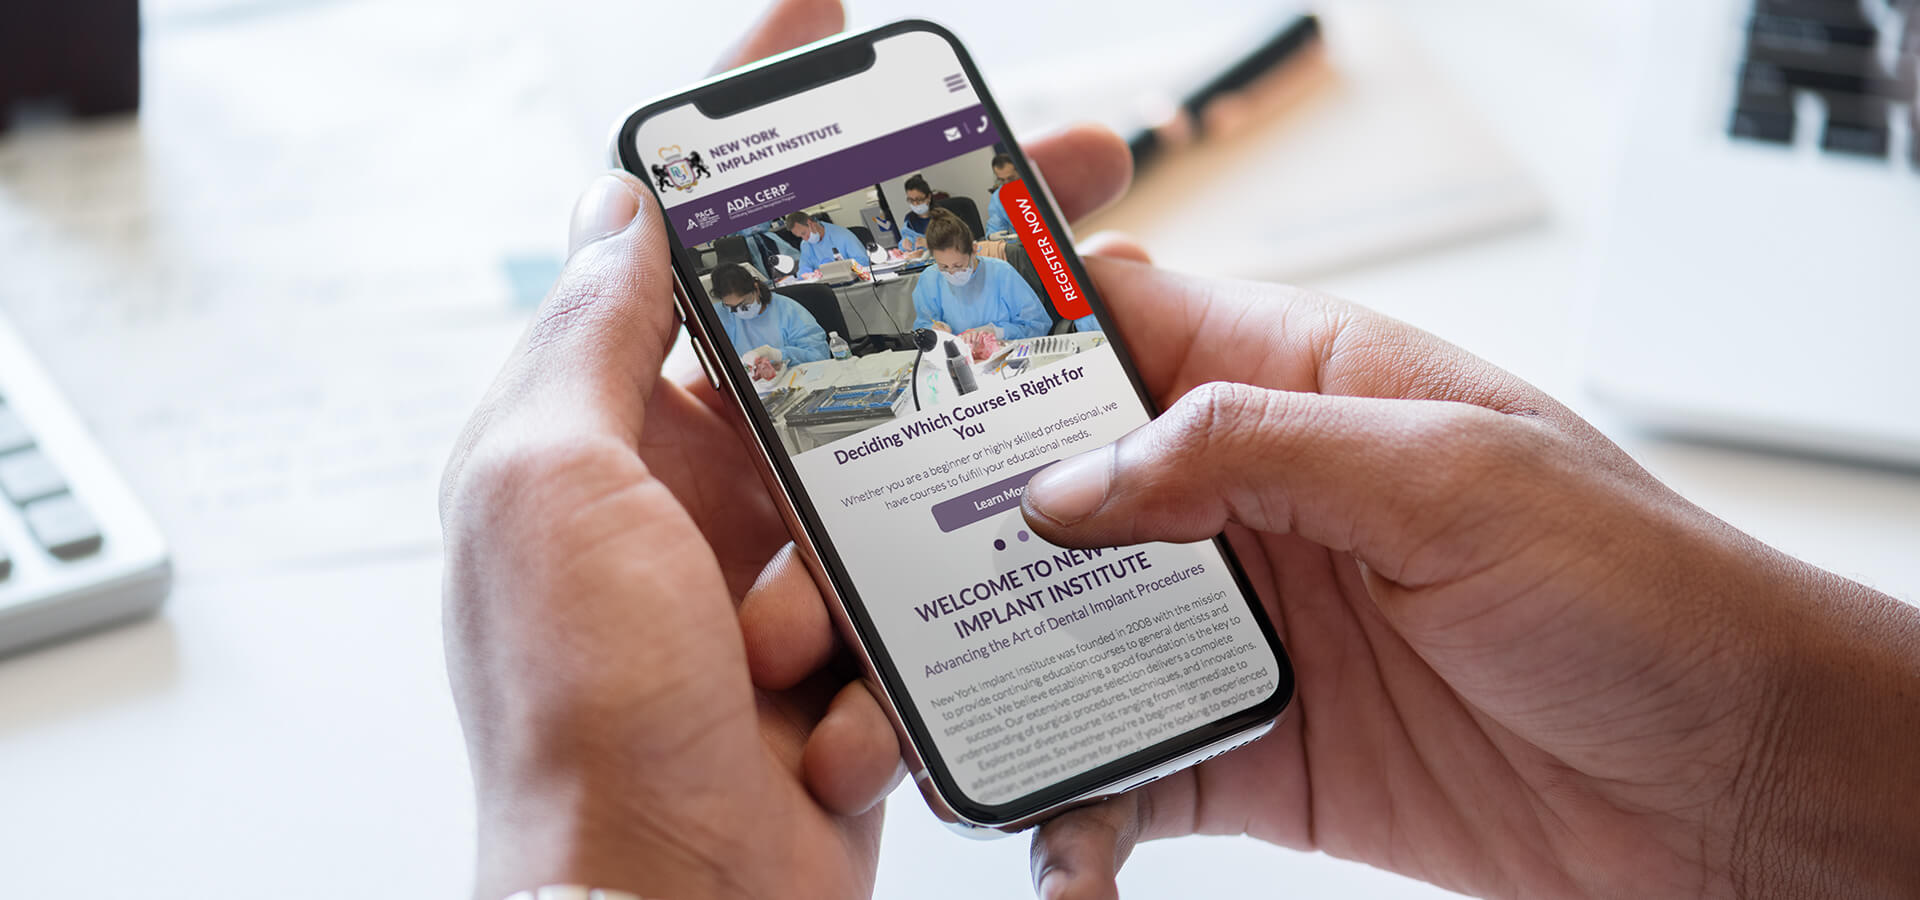 New York Implant Institute website on a mobile phone